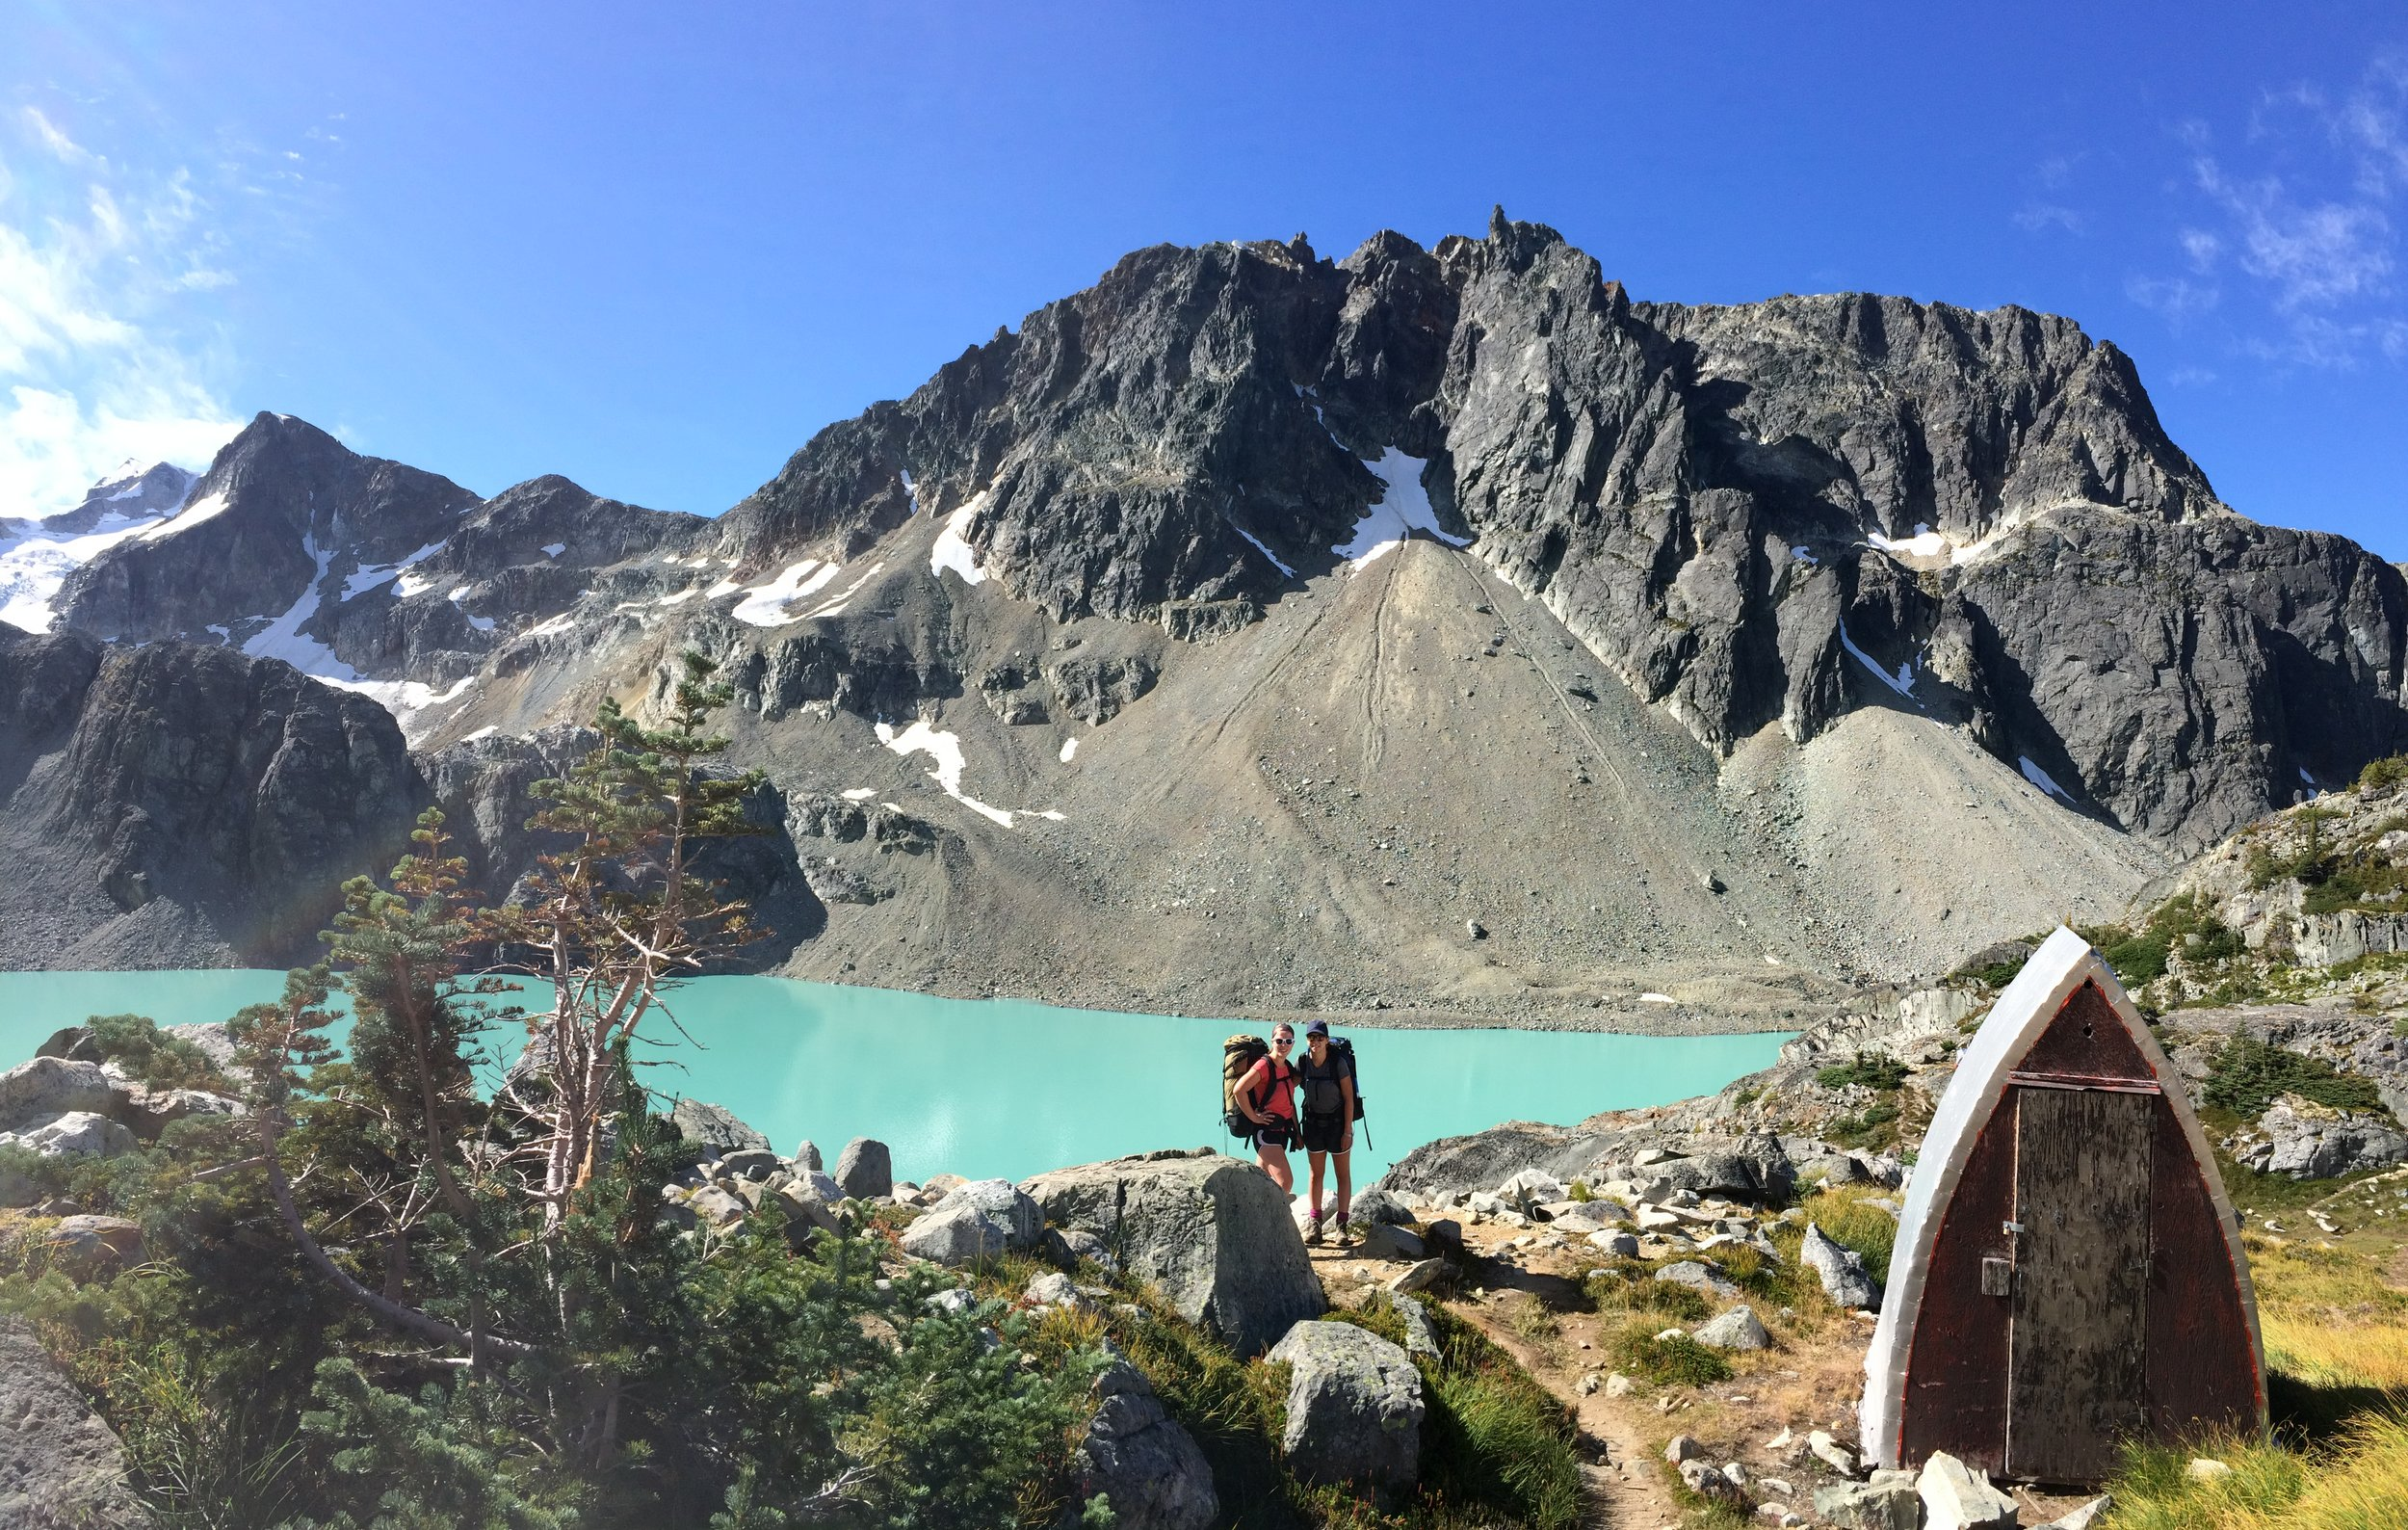 Here I am with my sister at Wedgemount Lake. Hiking is one of my favorite activities and has been since I was a kid!